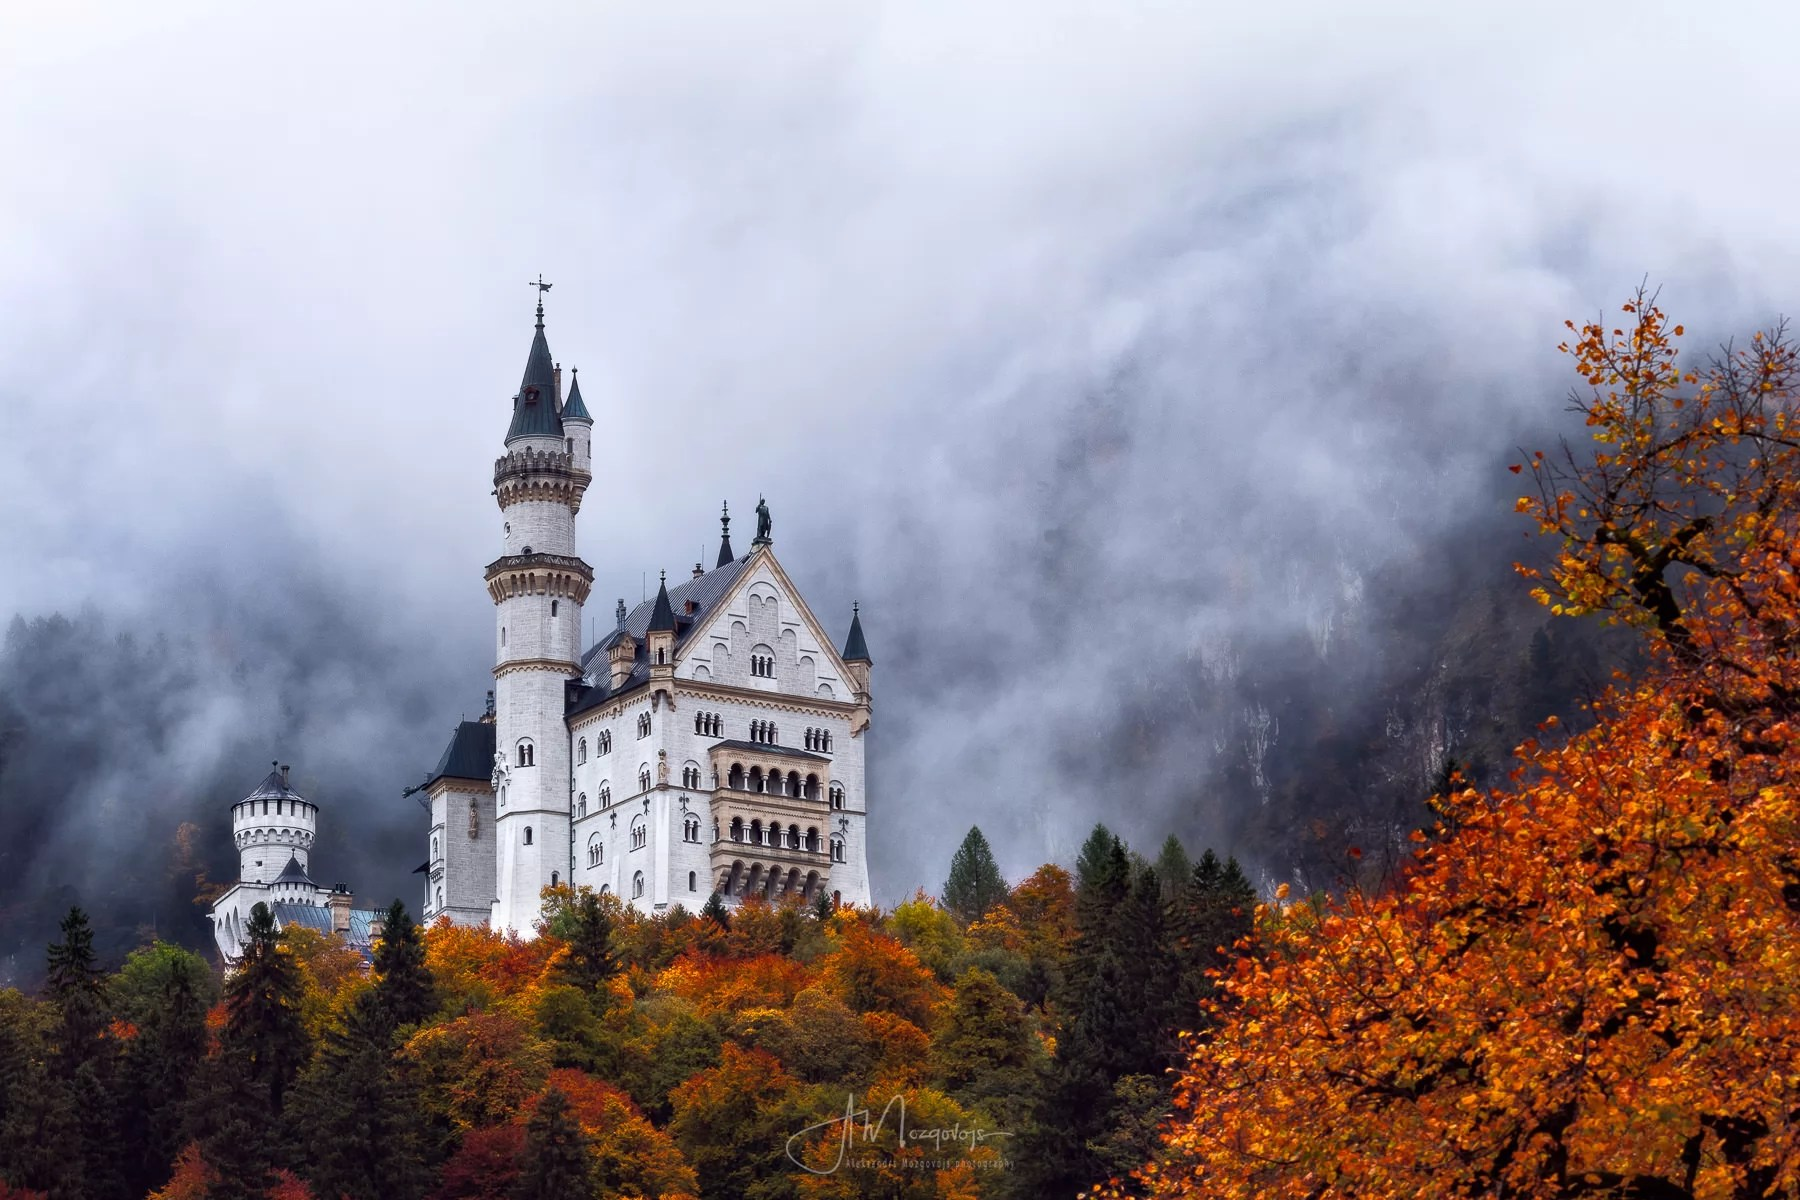 A beautiful photo of castle Neuschwanstein from a parking lot